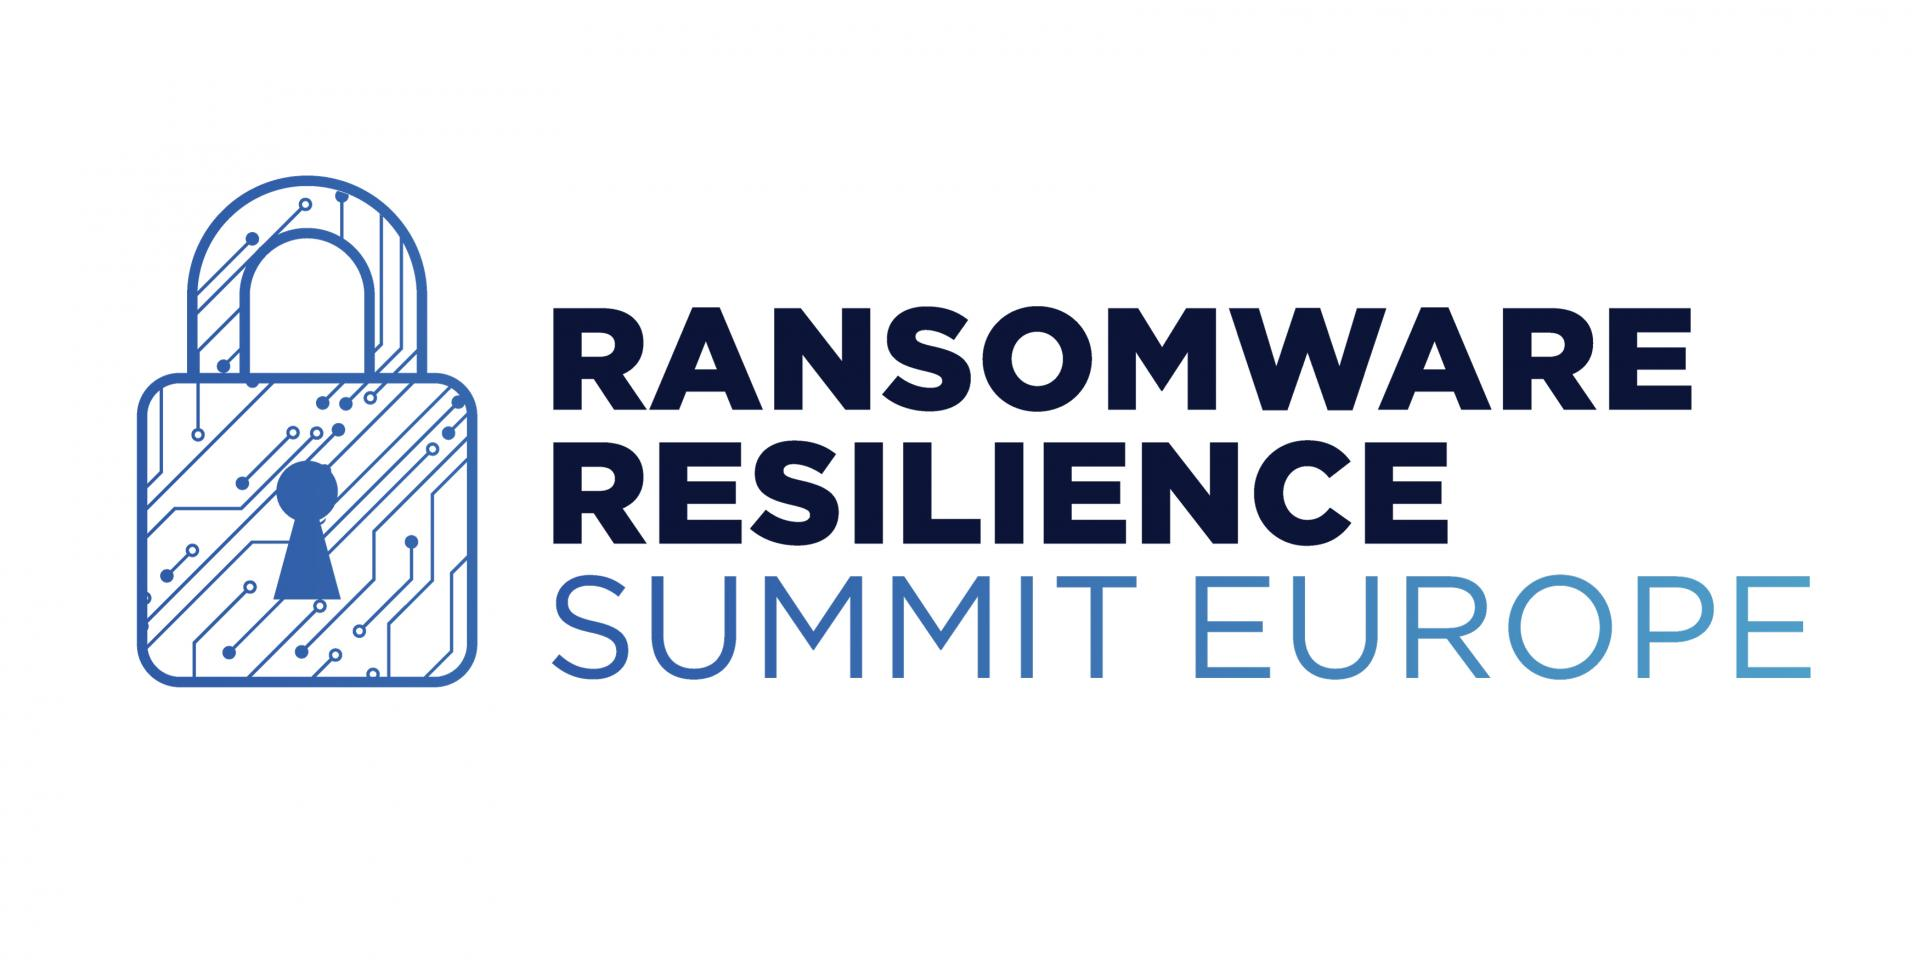 Ransomware Resilience Summit Europe